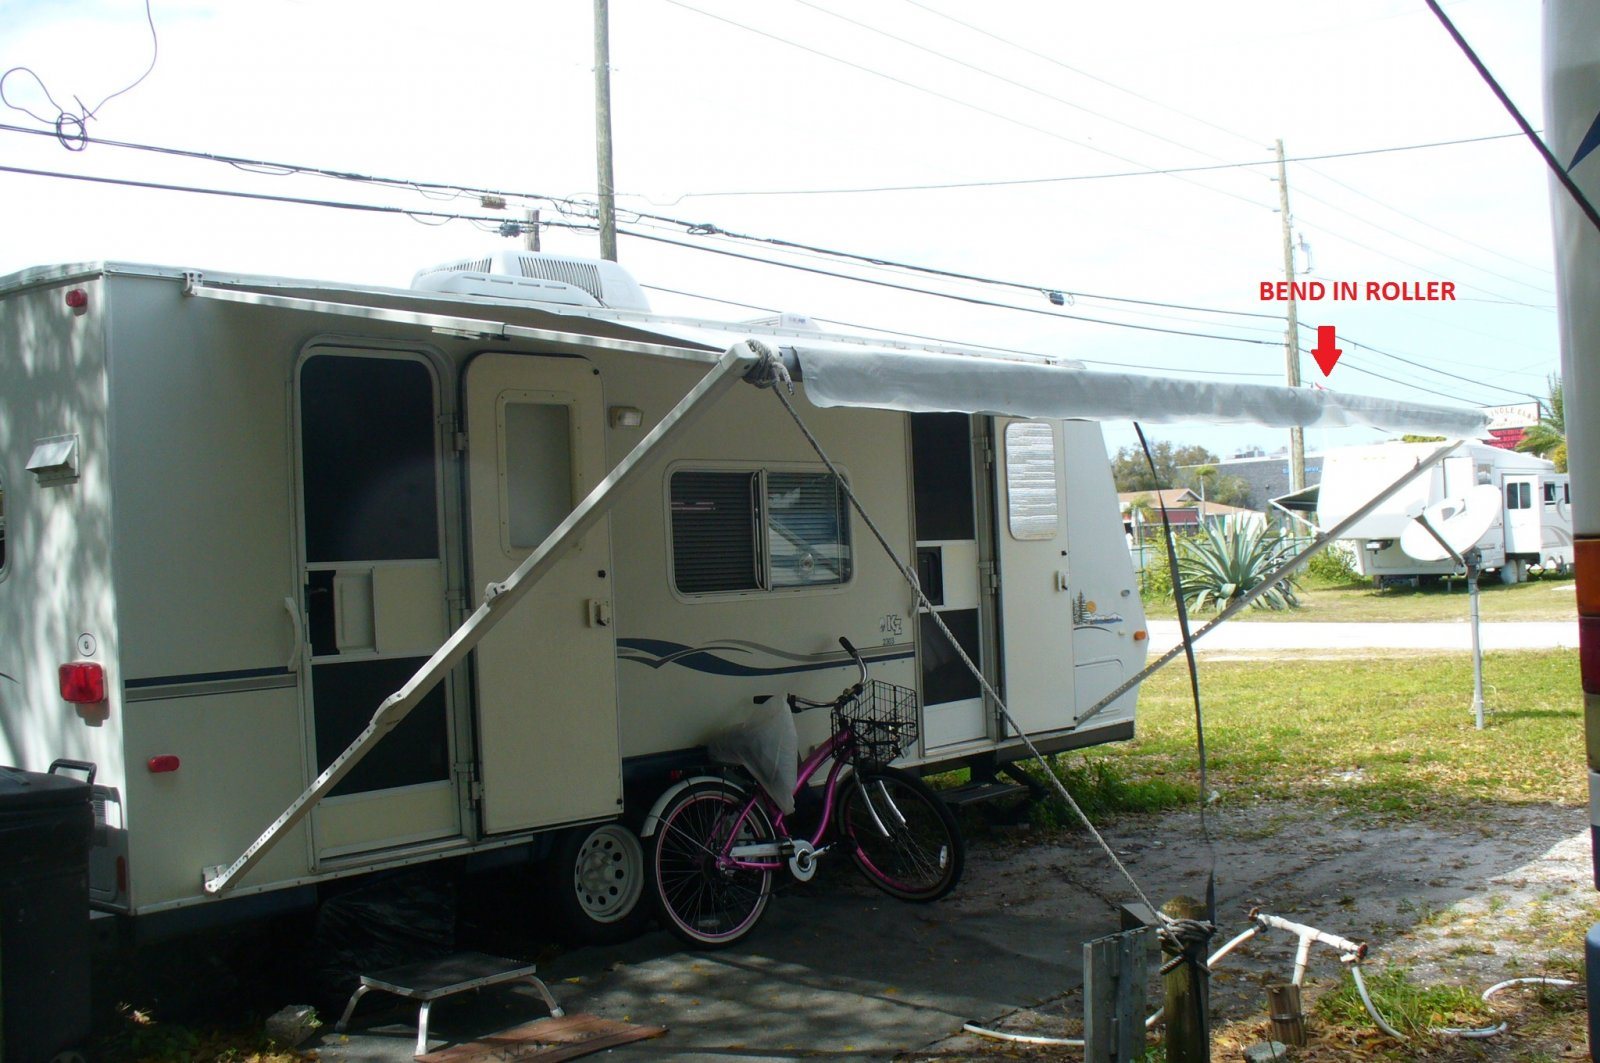 Click image for larger version  Name:Old Awning 2-23-2015.jpg Views:56 Size:254.8 KB ID:86956